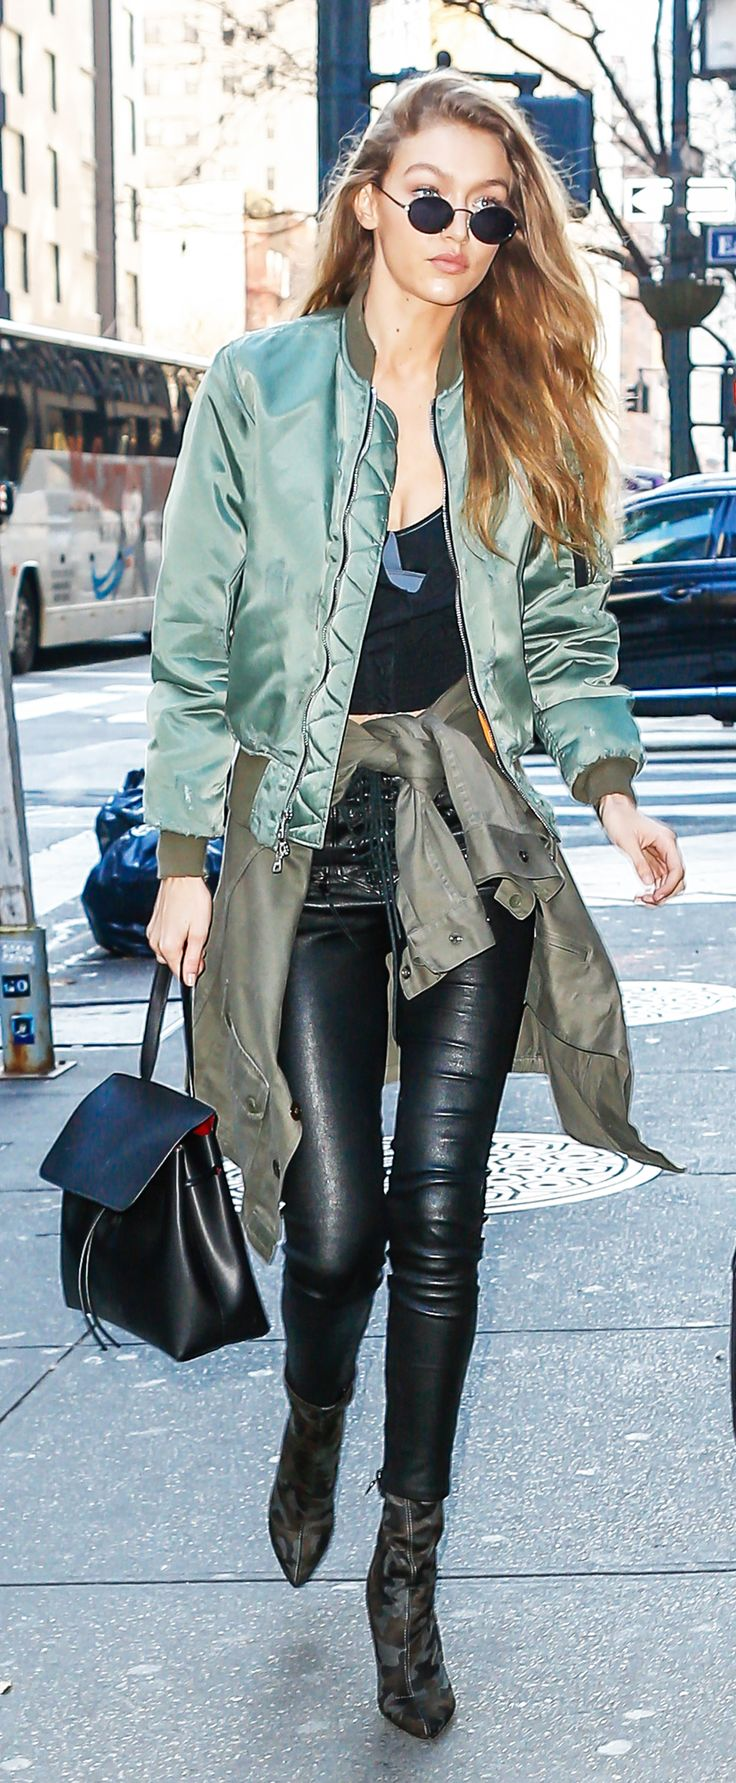 Model Gigi Hadid is always on top of the latest trends. Here, she combines some of her old favorites with new ones that are sure to be big next year.